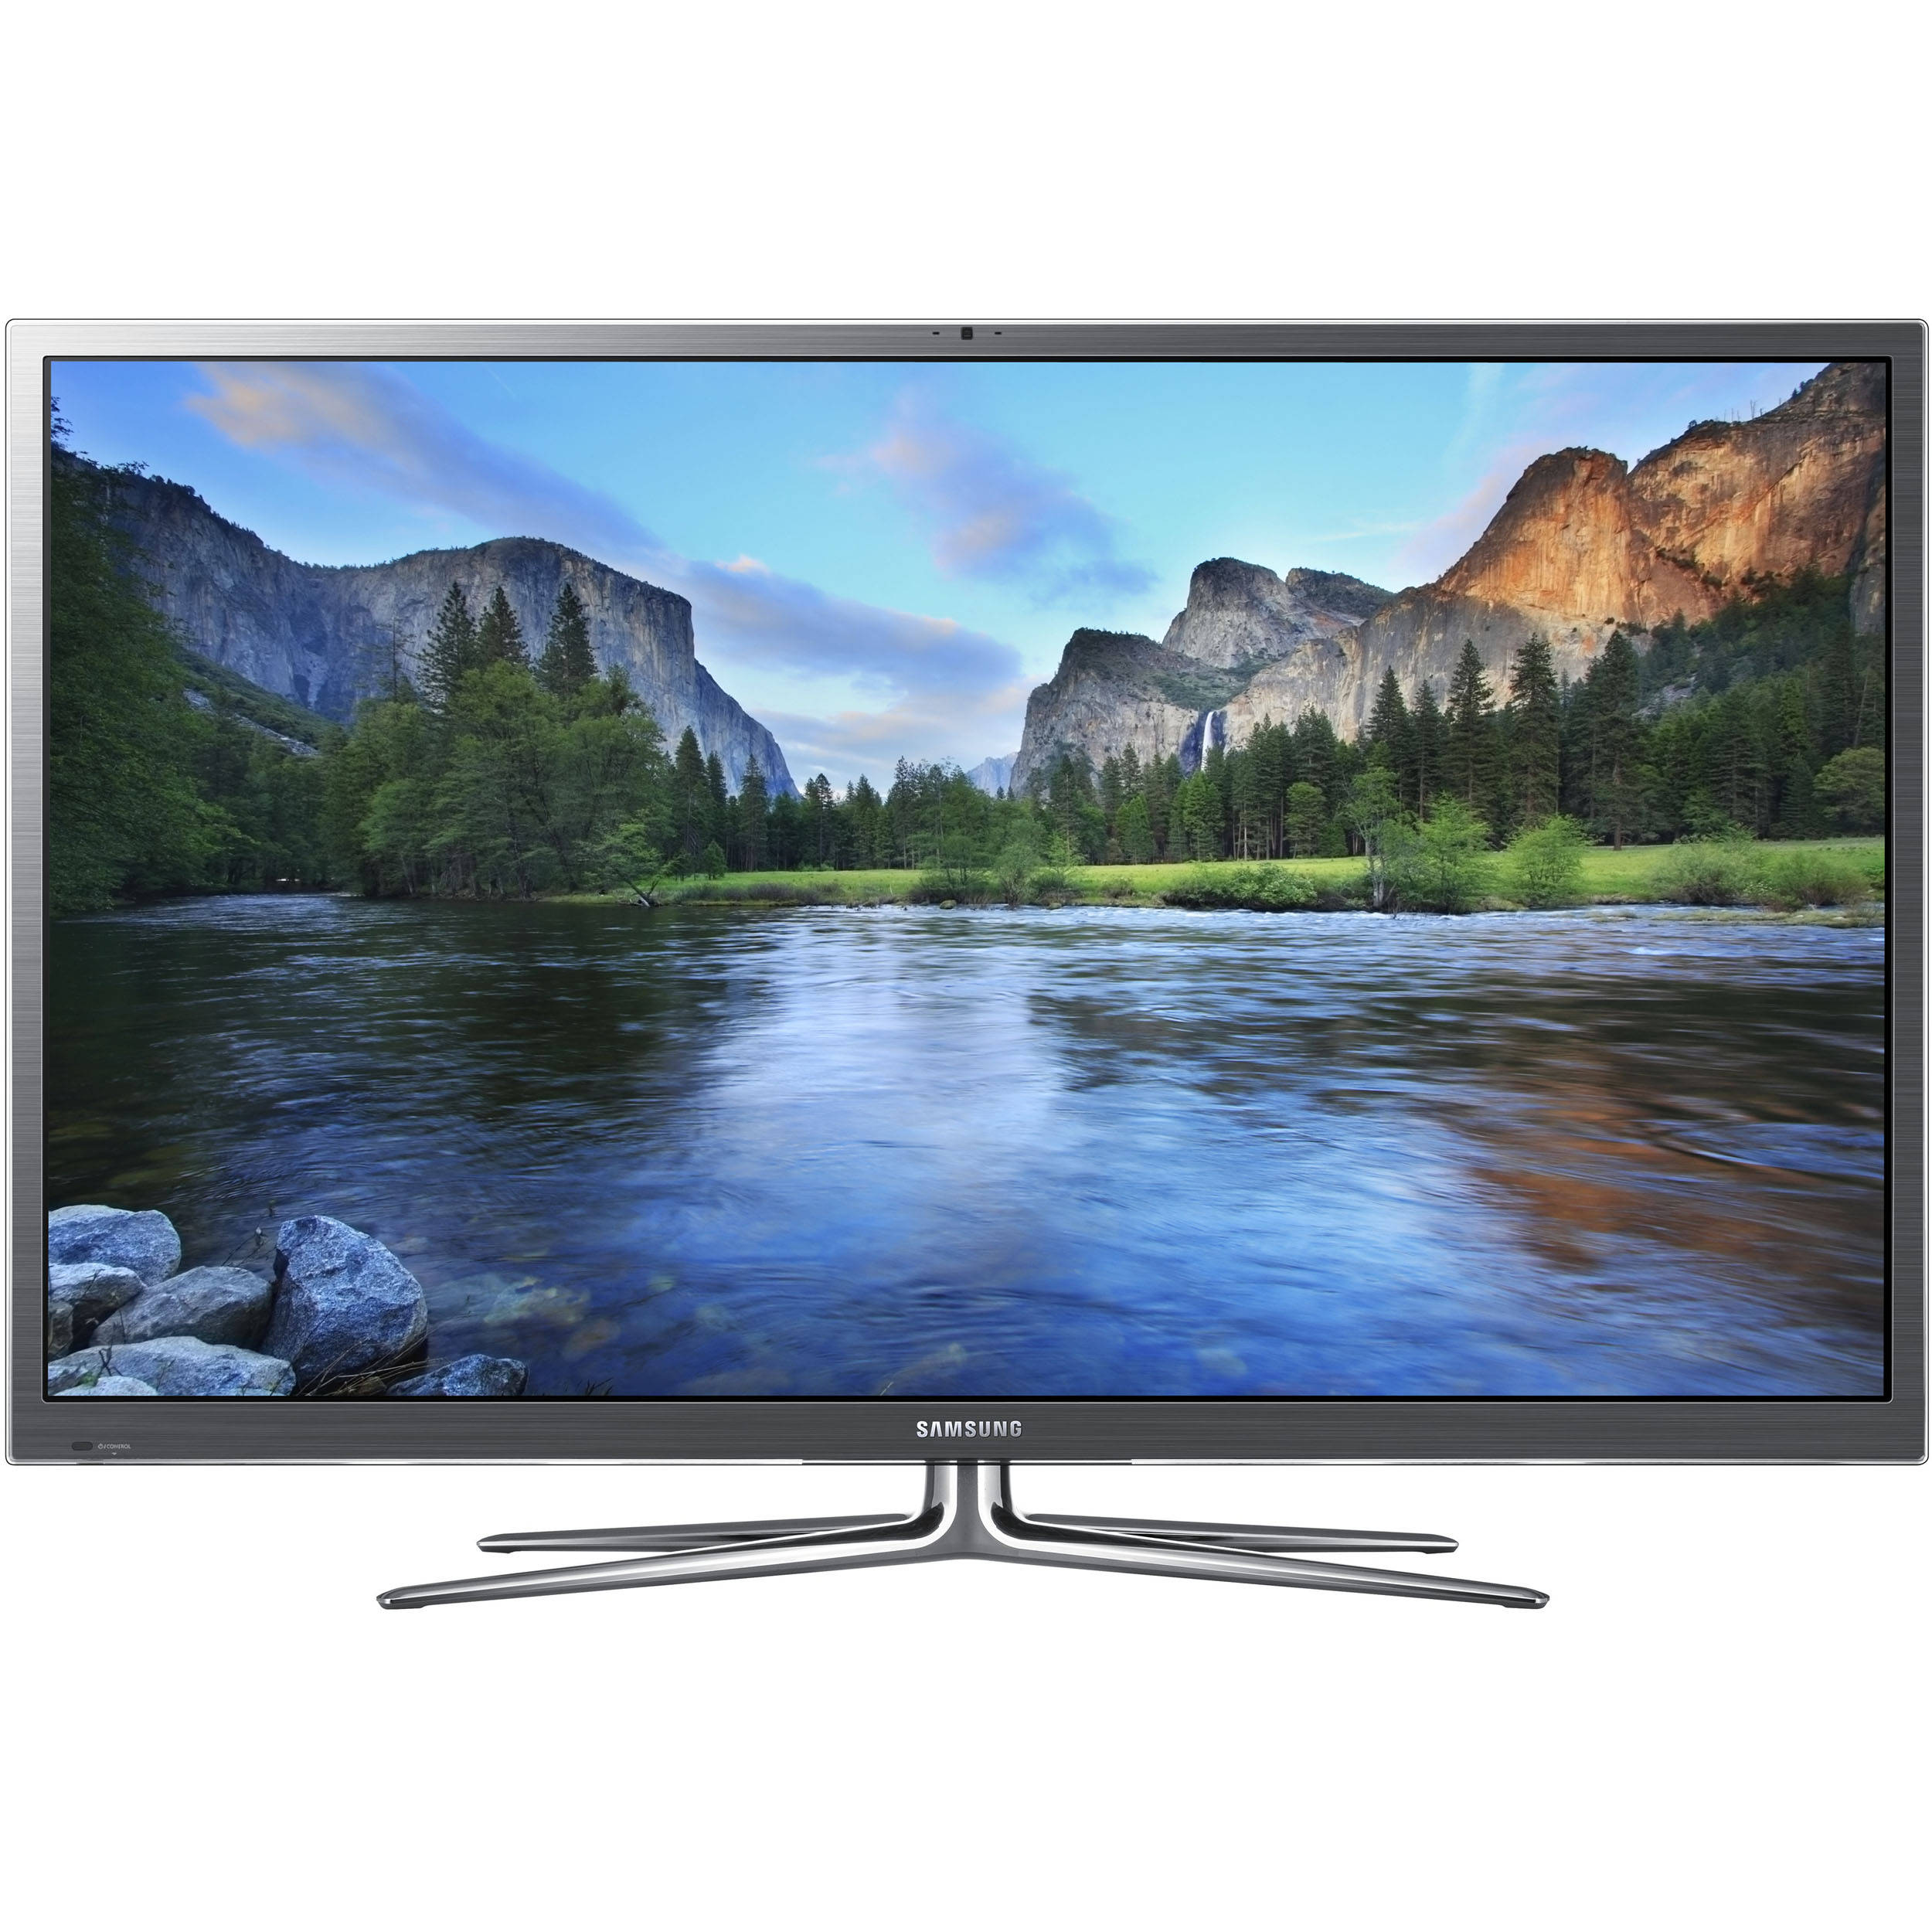 Samsung Pn64e8000 64 Class Pdp Hdtv Pn64e8000gfxza Bh Tvs Together With 42 Inch Plasma Tv Circuit Boards On